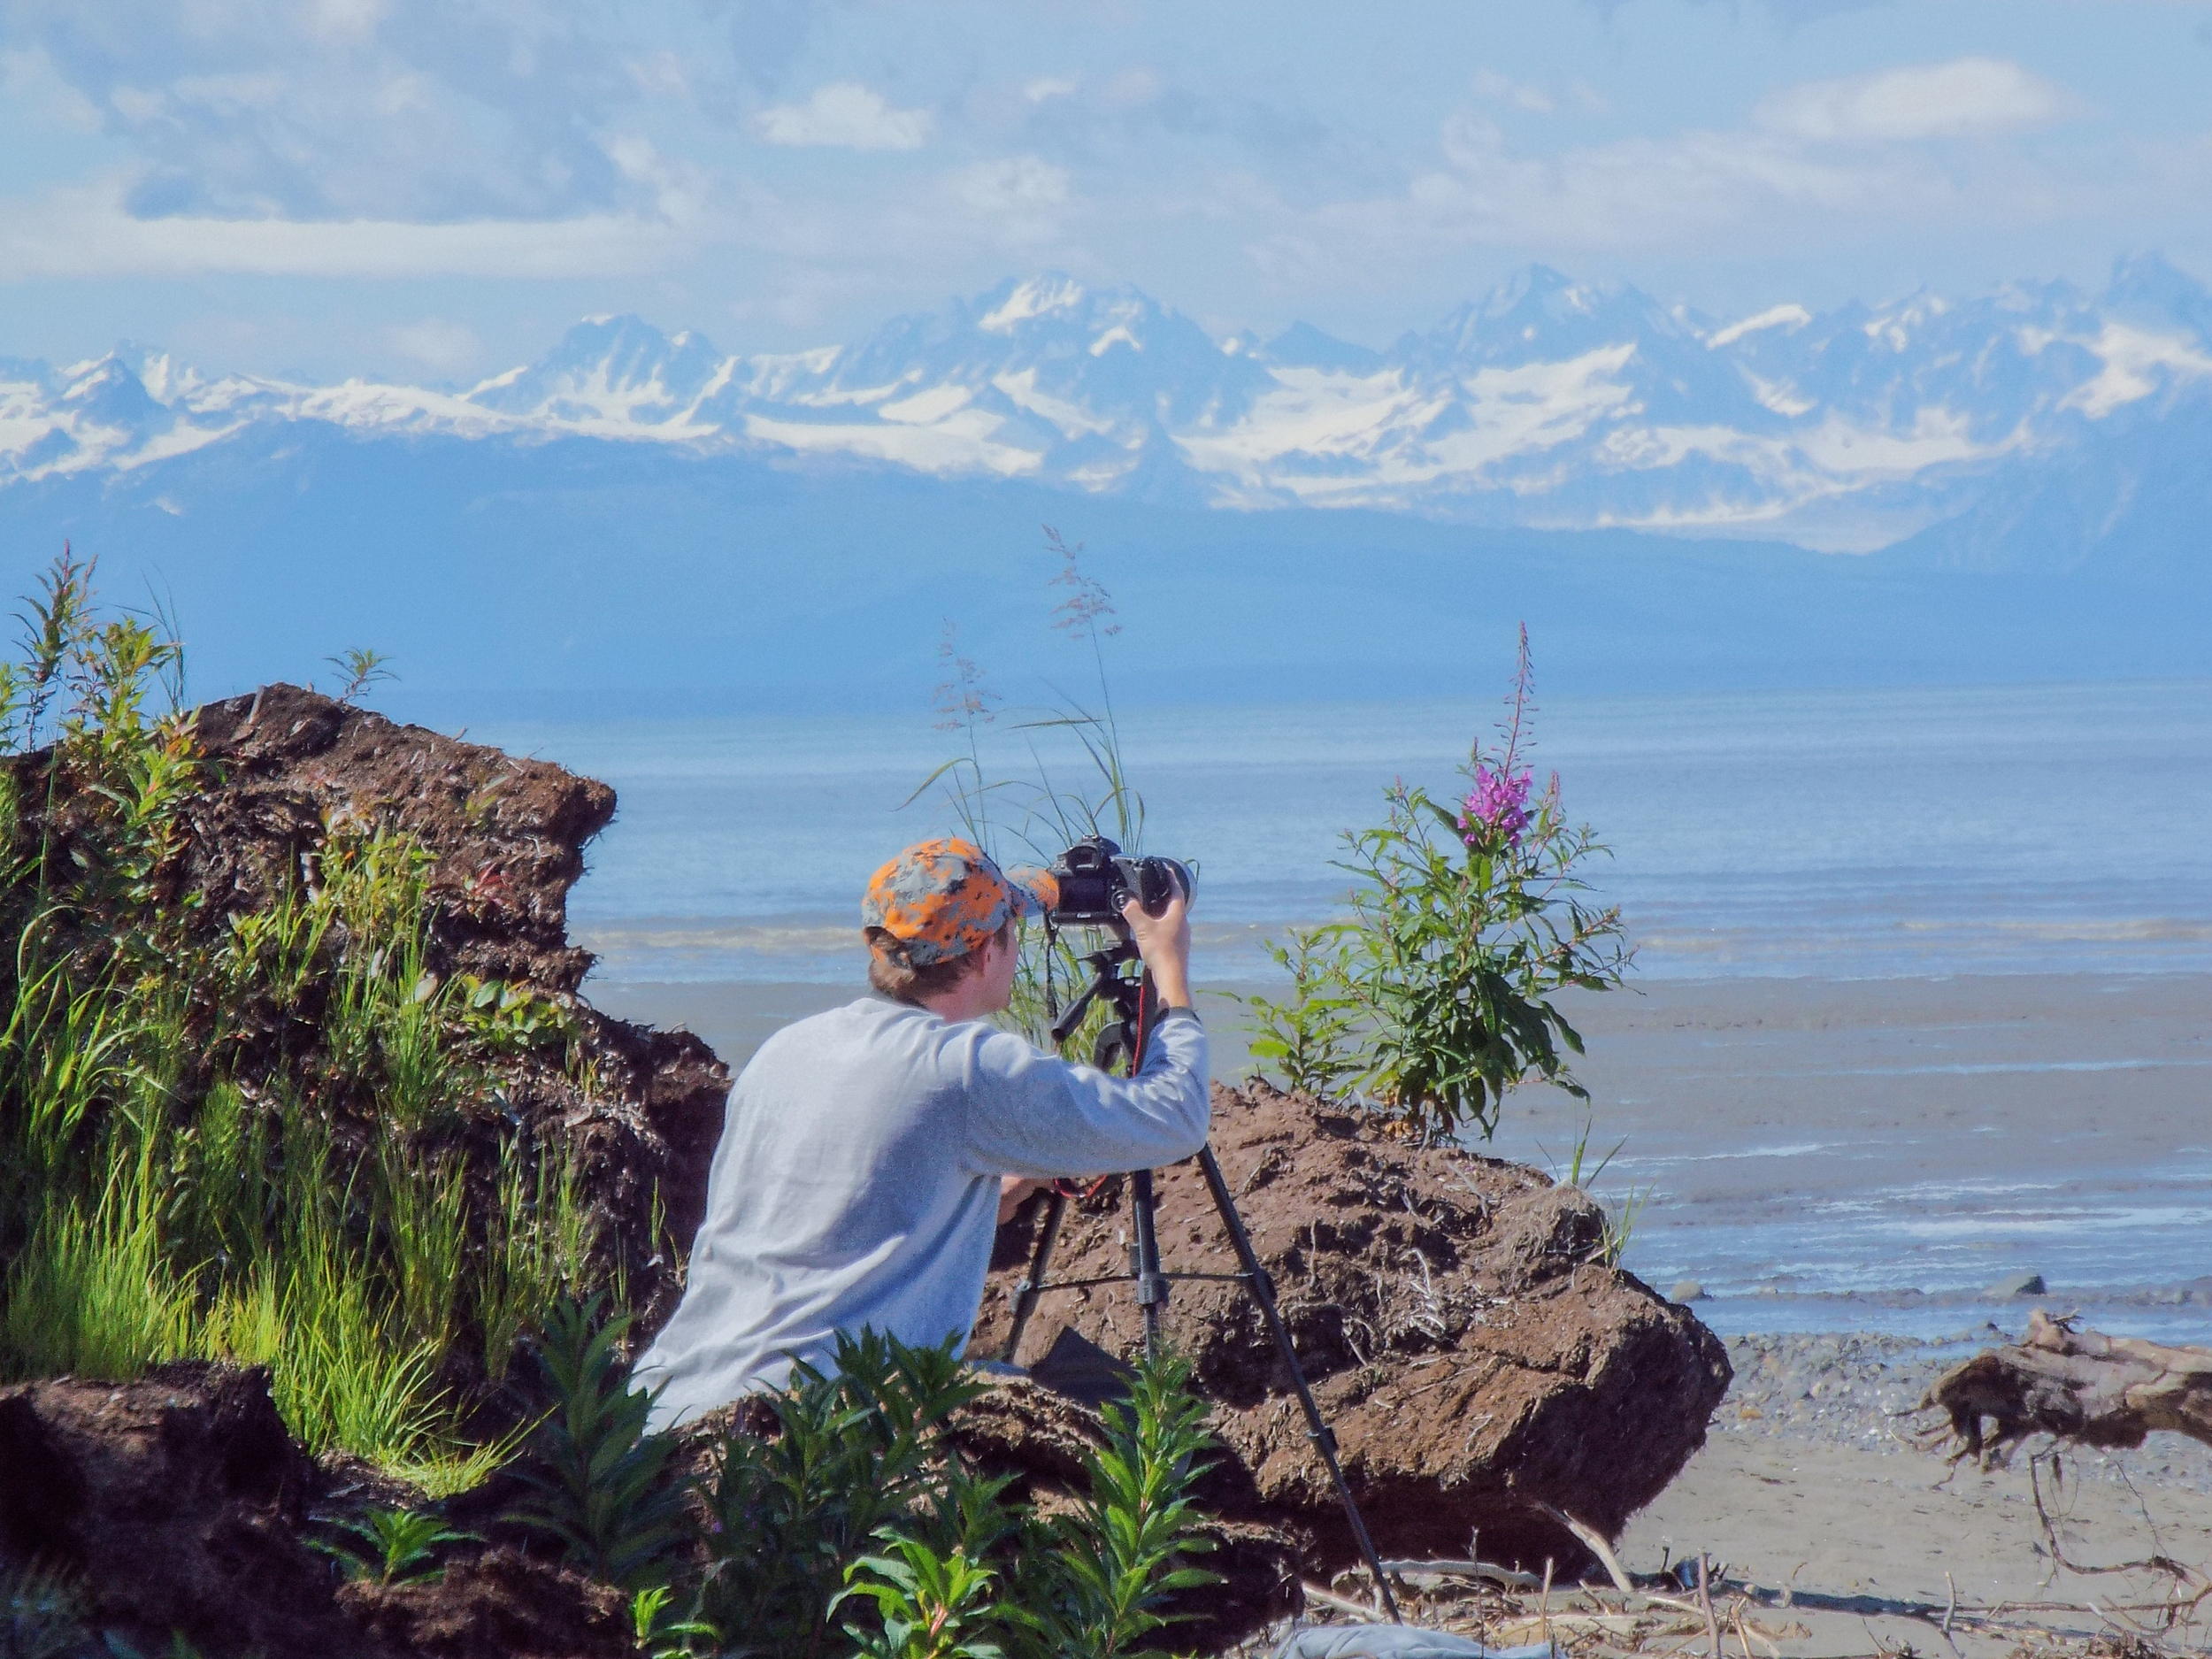 Tyler capturing some of Alaska's beauty using time-lapse photography.